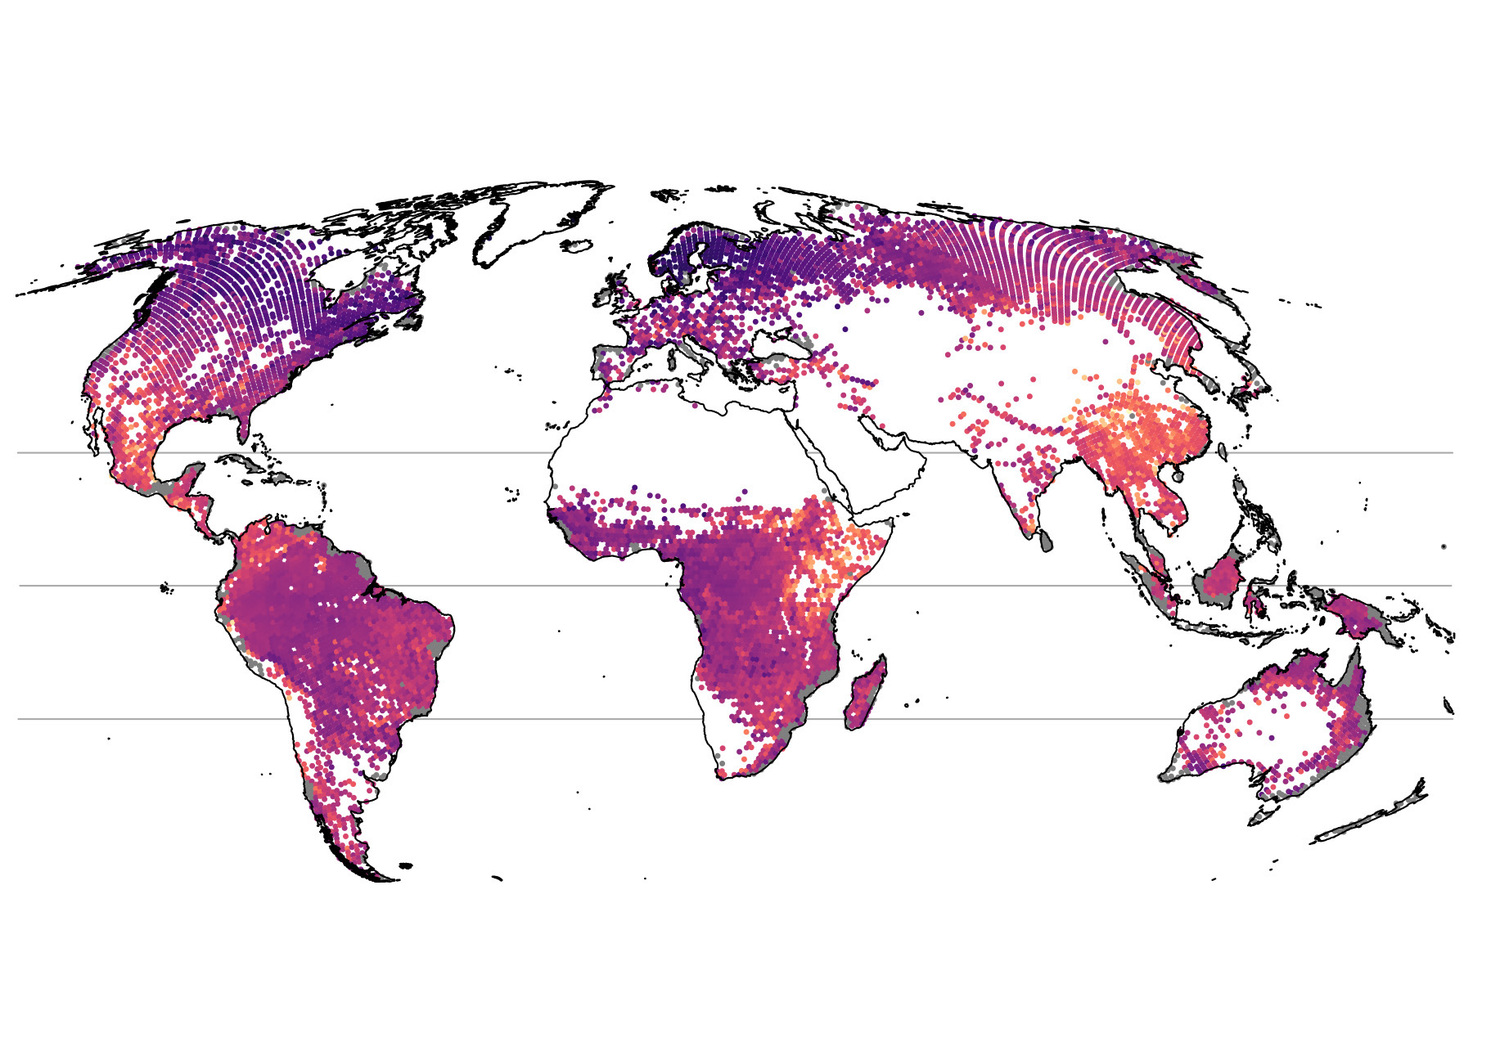 Complete world map of tree diversity: New statistical model eliminates blank spaces